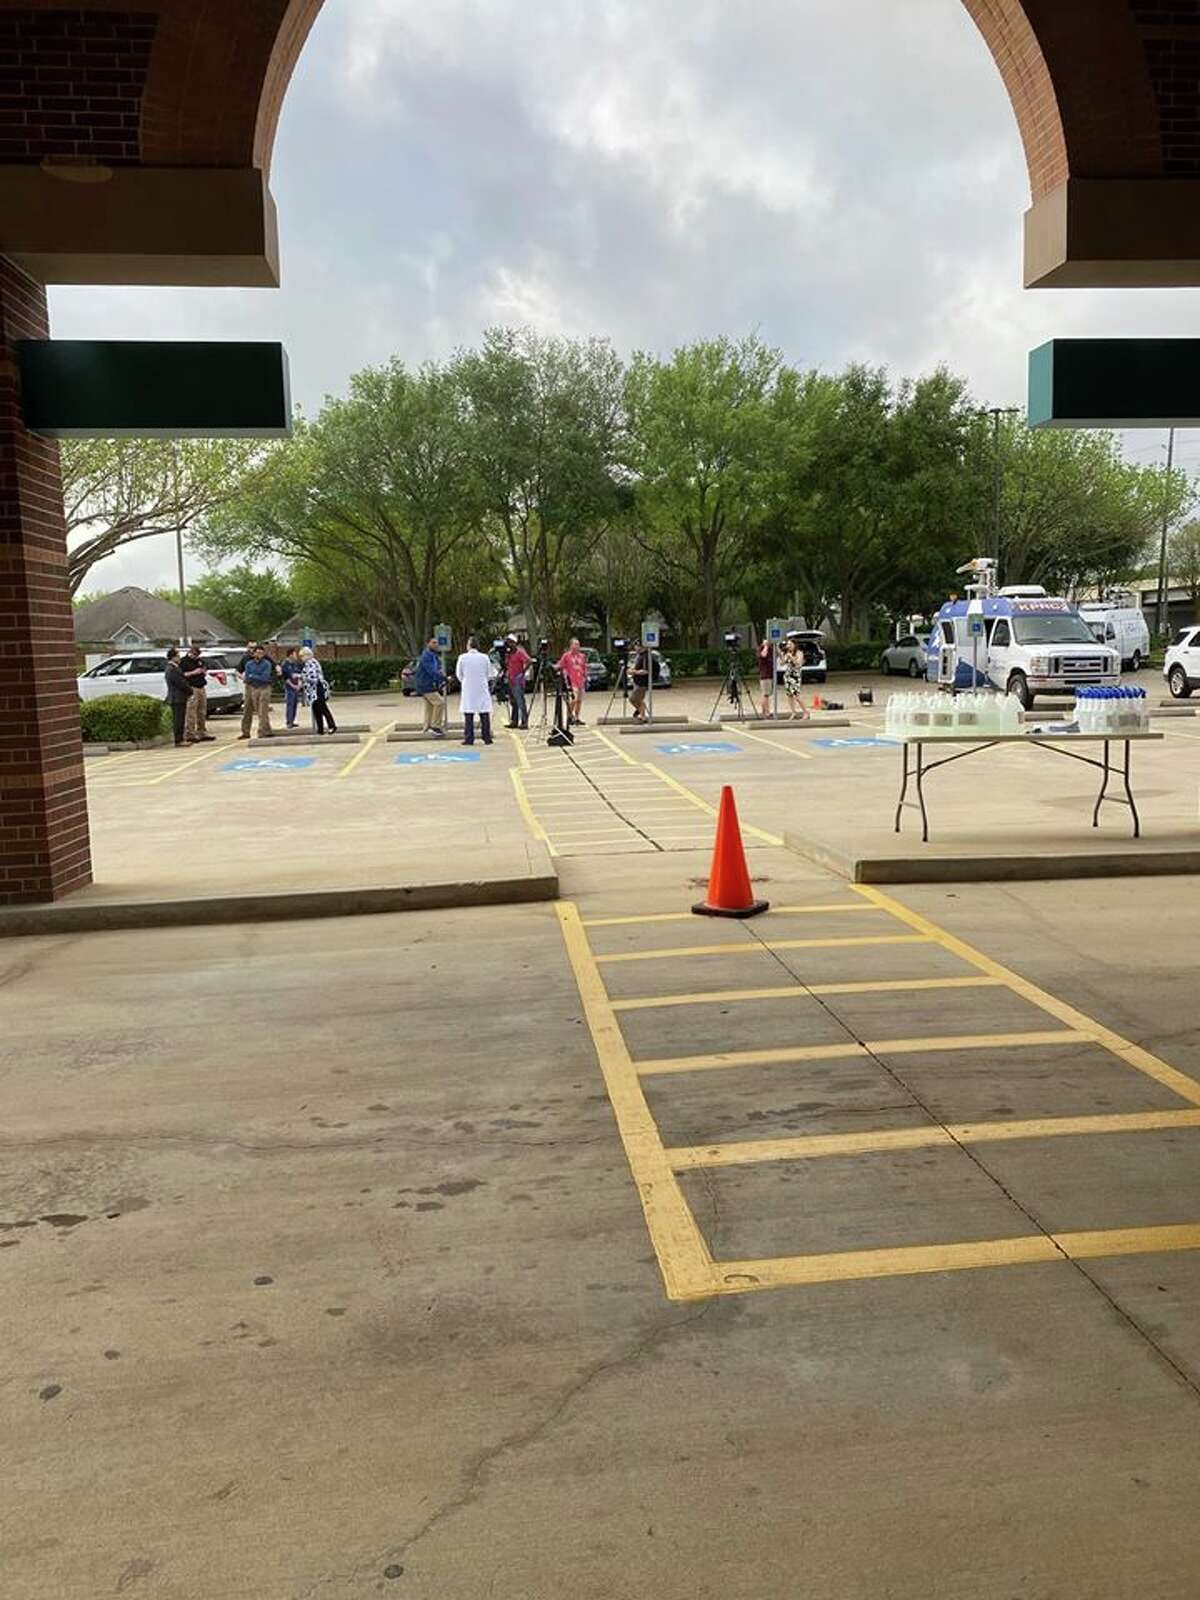 PHOTOS: Houston life during a pandemicThe Oakbend Medical Center in Fort Bend County has opened a private, drive-thru COVID-19 testing site.>>>See more for what life in Houston during the coronavirus pandemic looks like...